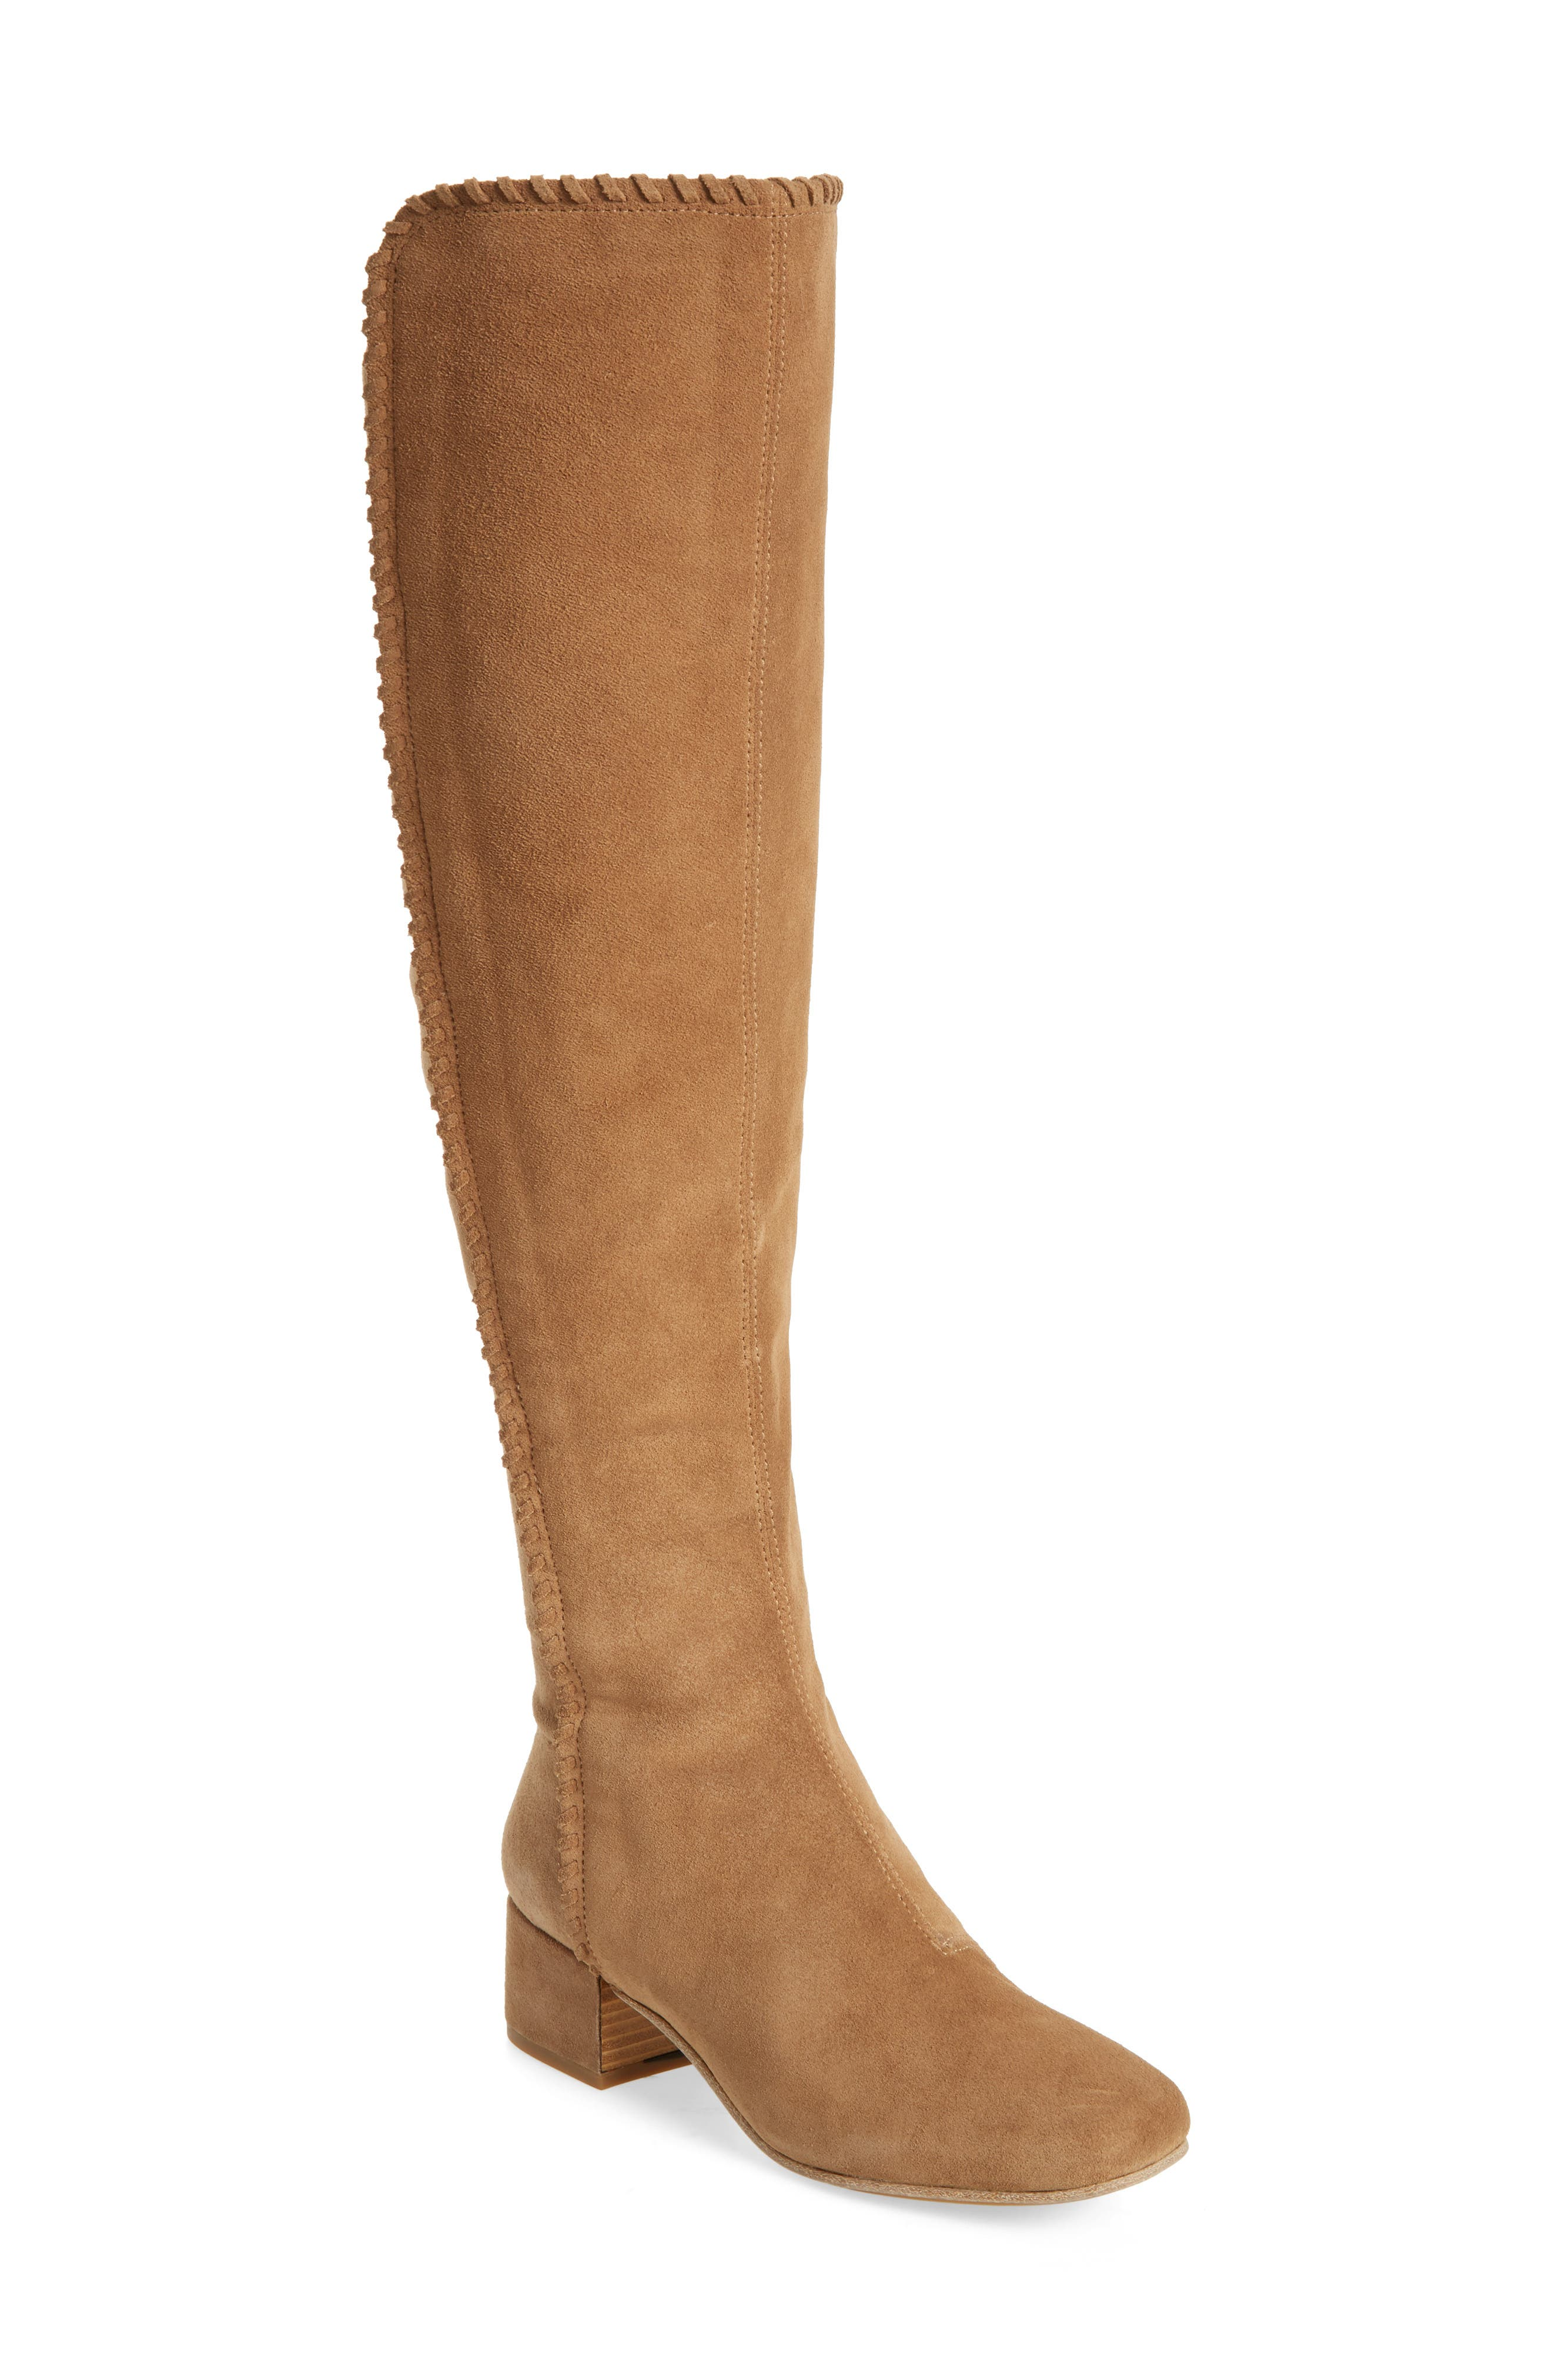 Emery Over the Knee Boot,                         Main,                         color, Camel Suede